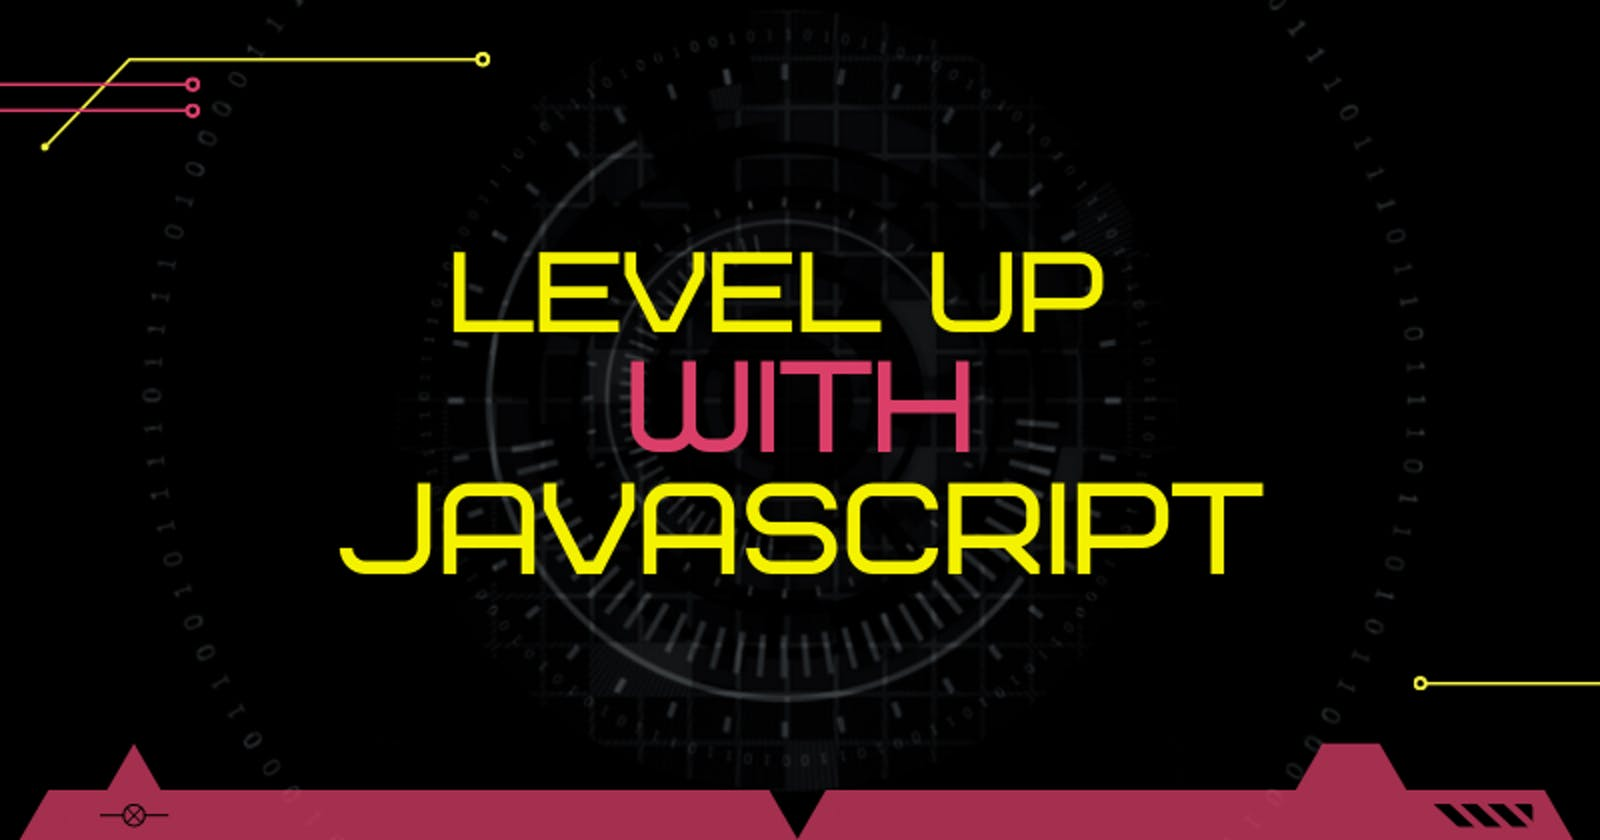 LEVEL UP with JavaScript! LVL 7